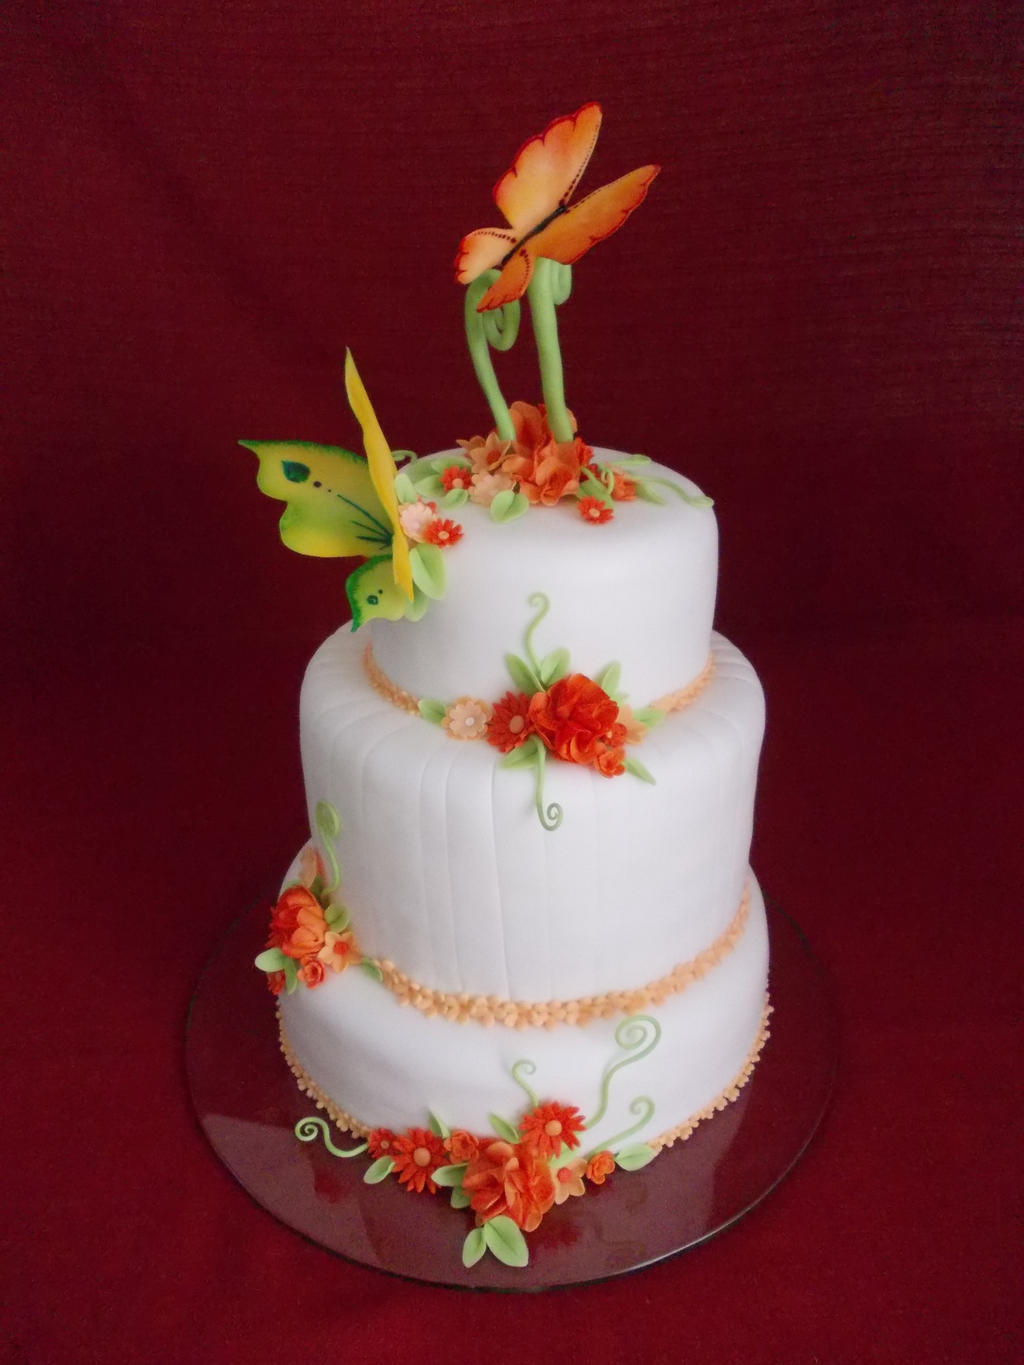 fly wedding cake by Nydrli